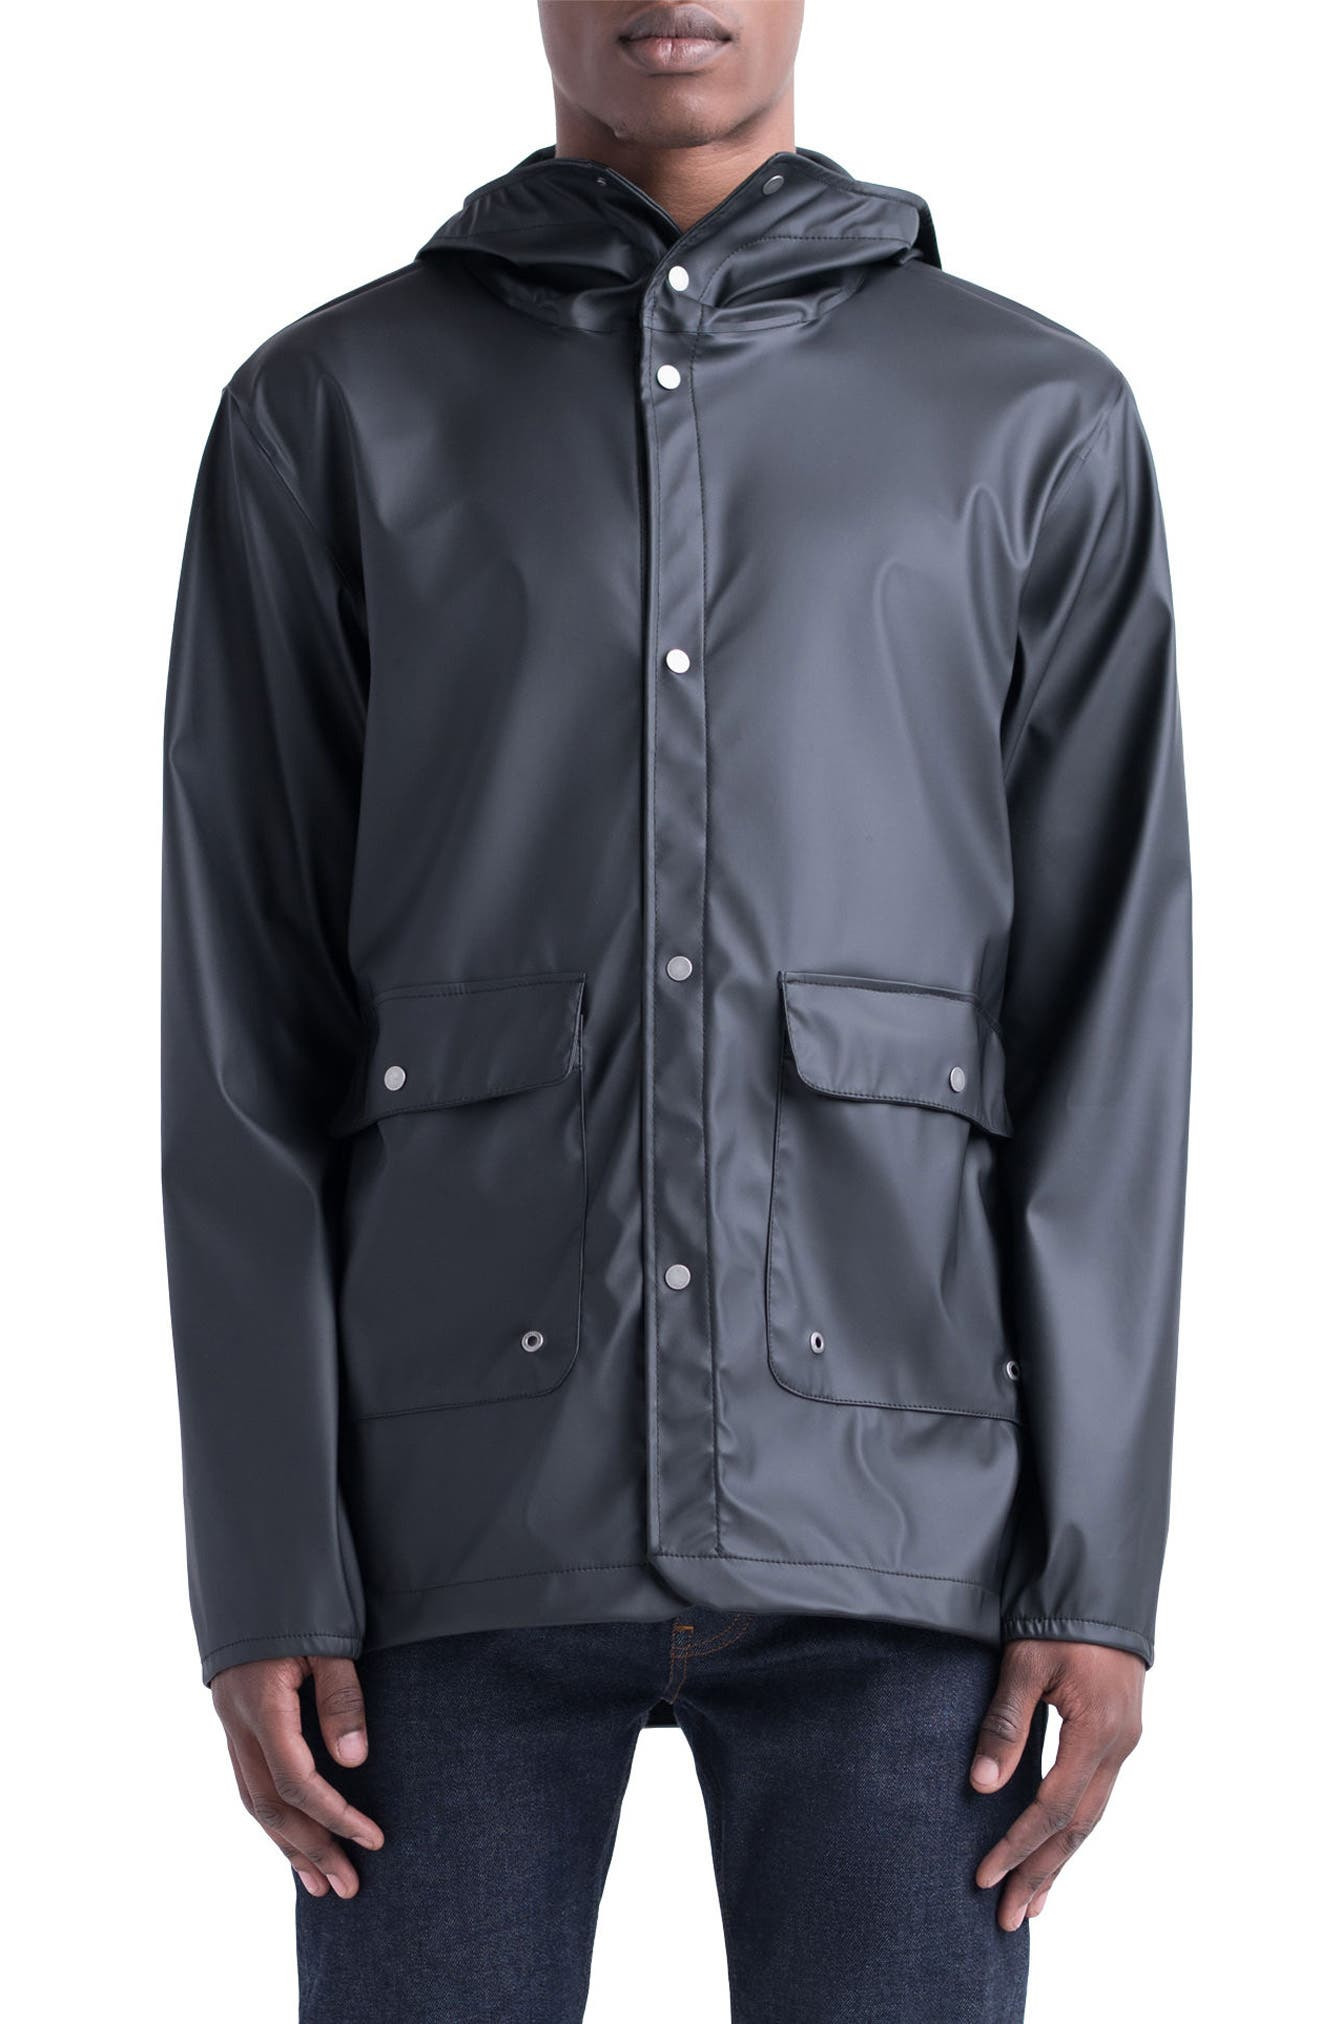 Forecast Parka,                             Main thumbnail 1, color,                             Black